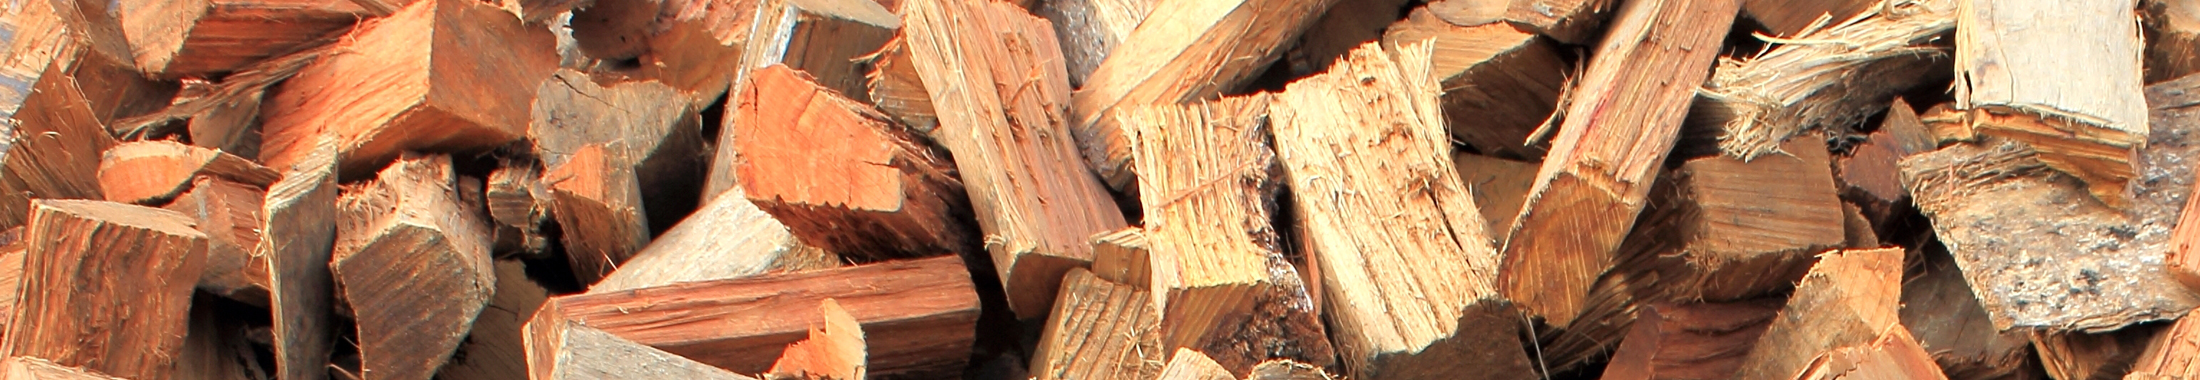 wood supplies